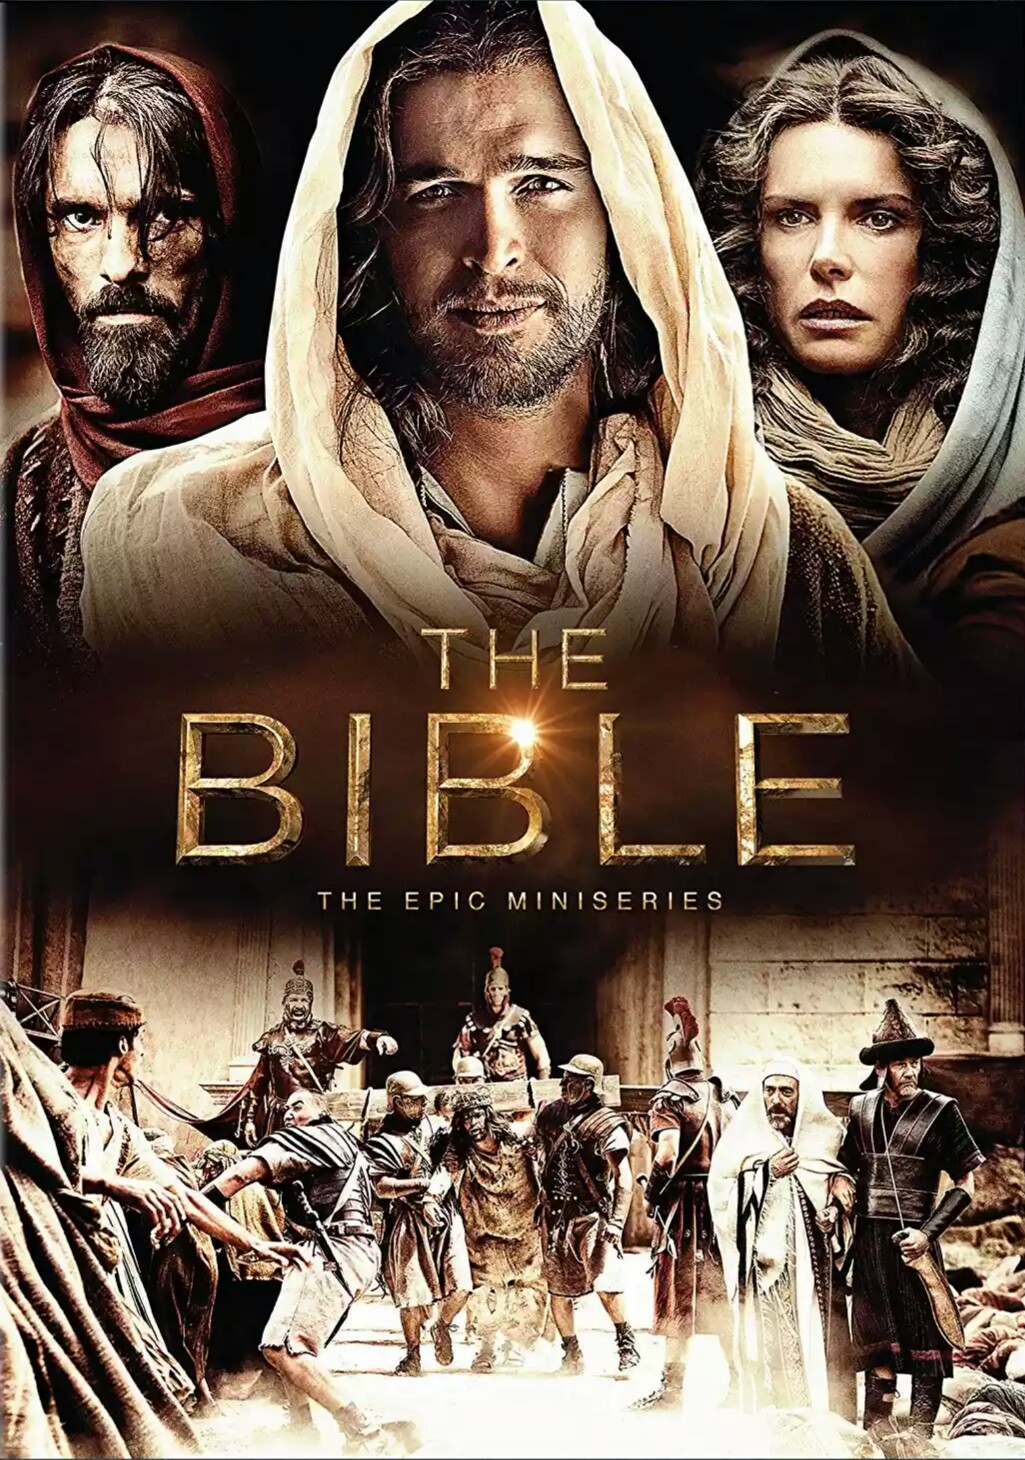 The Bible (2013) Technical Specifications